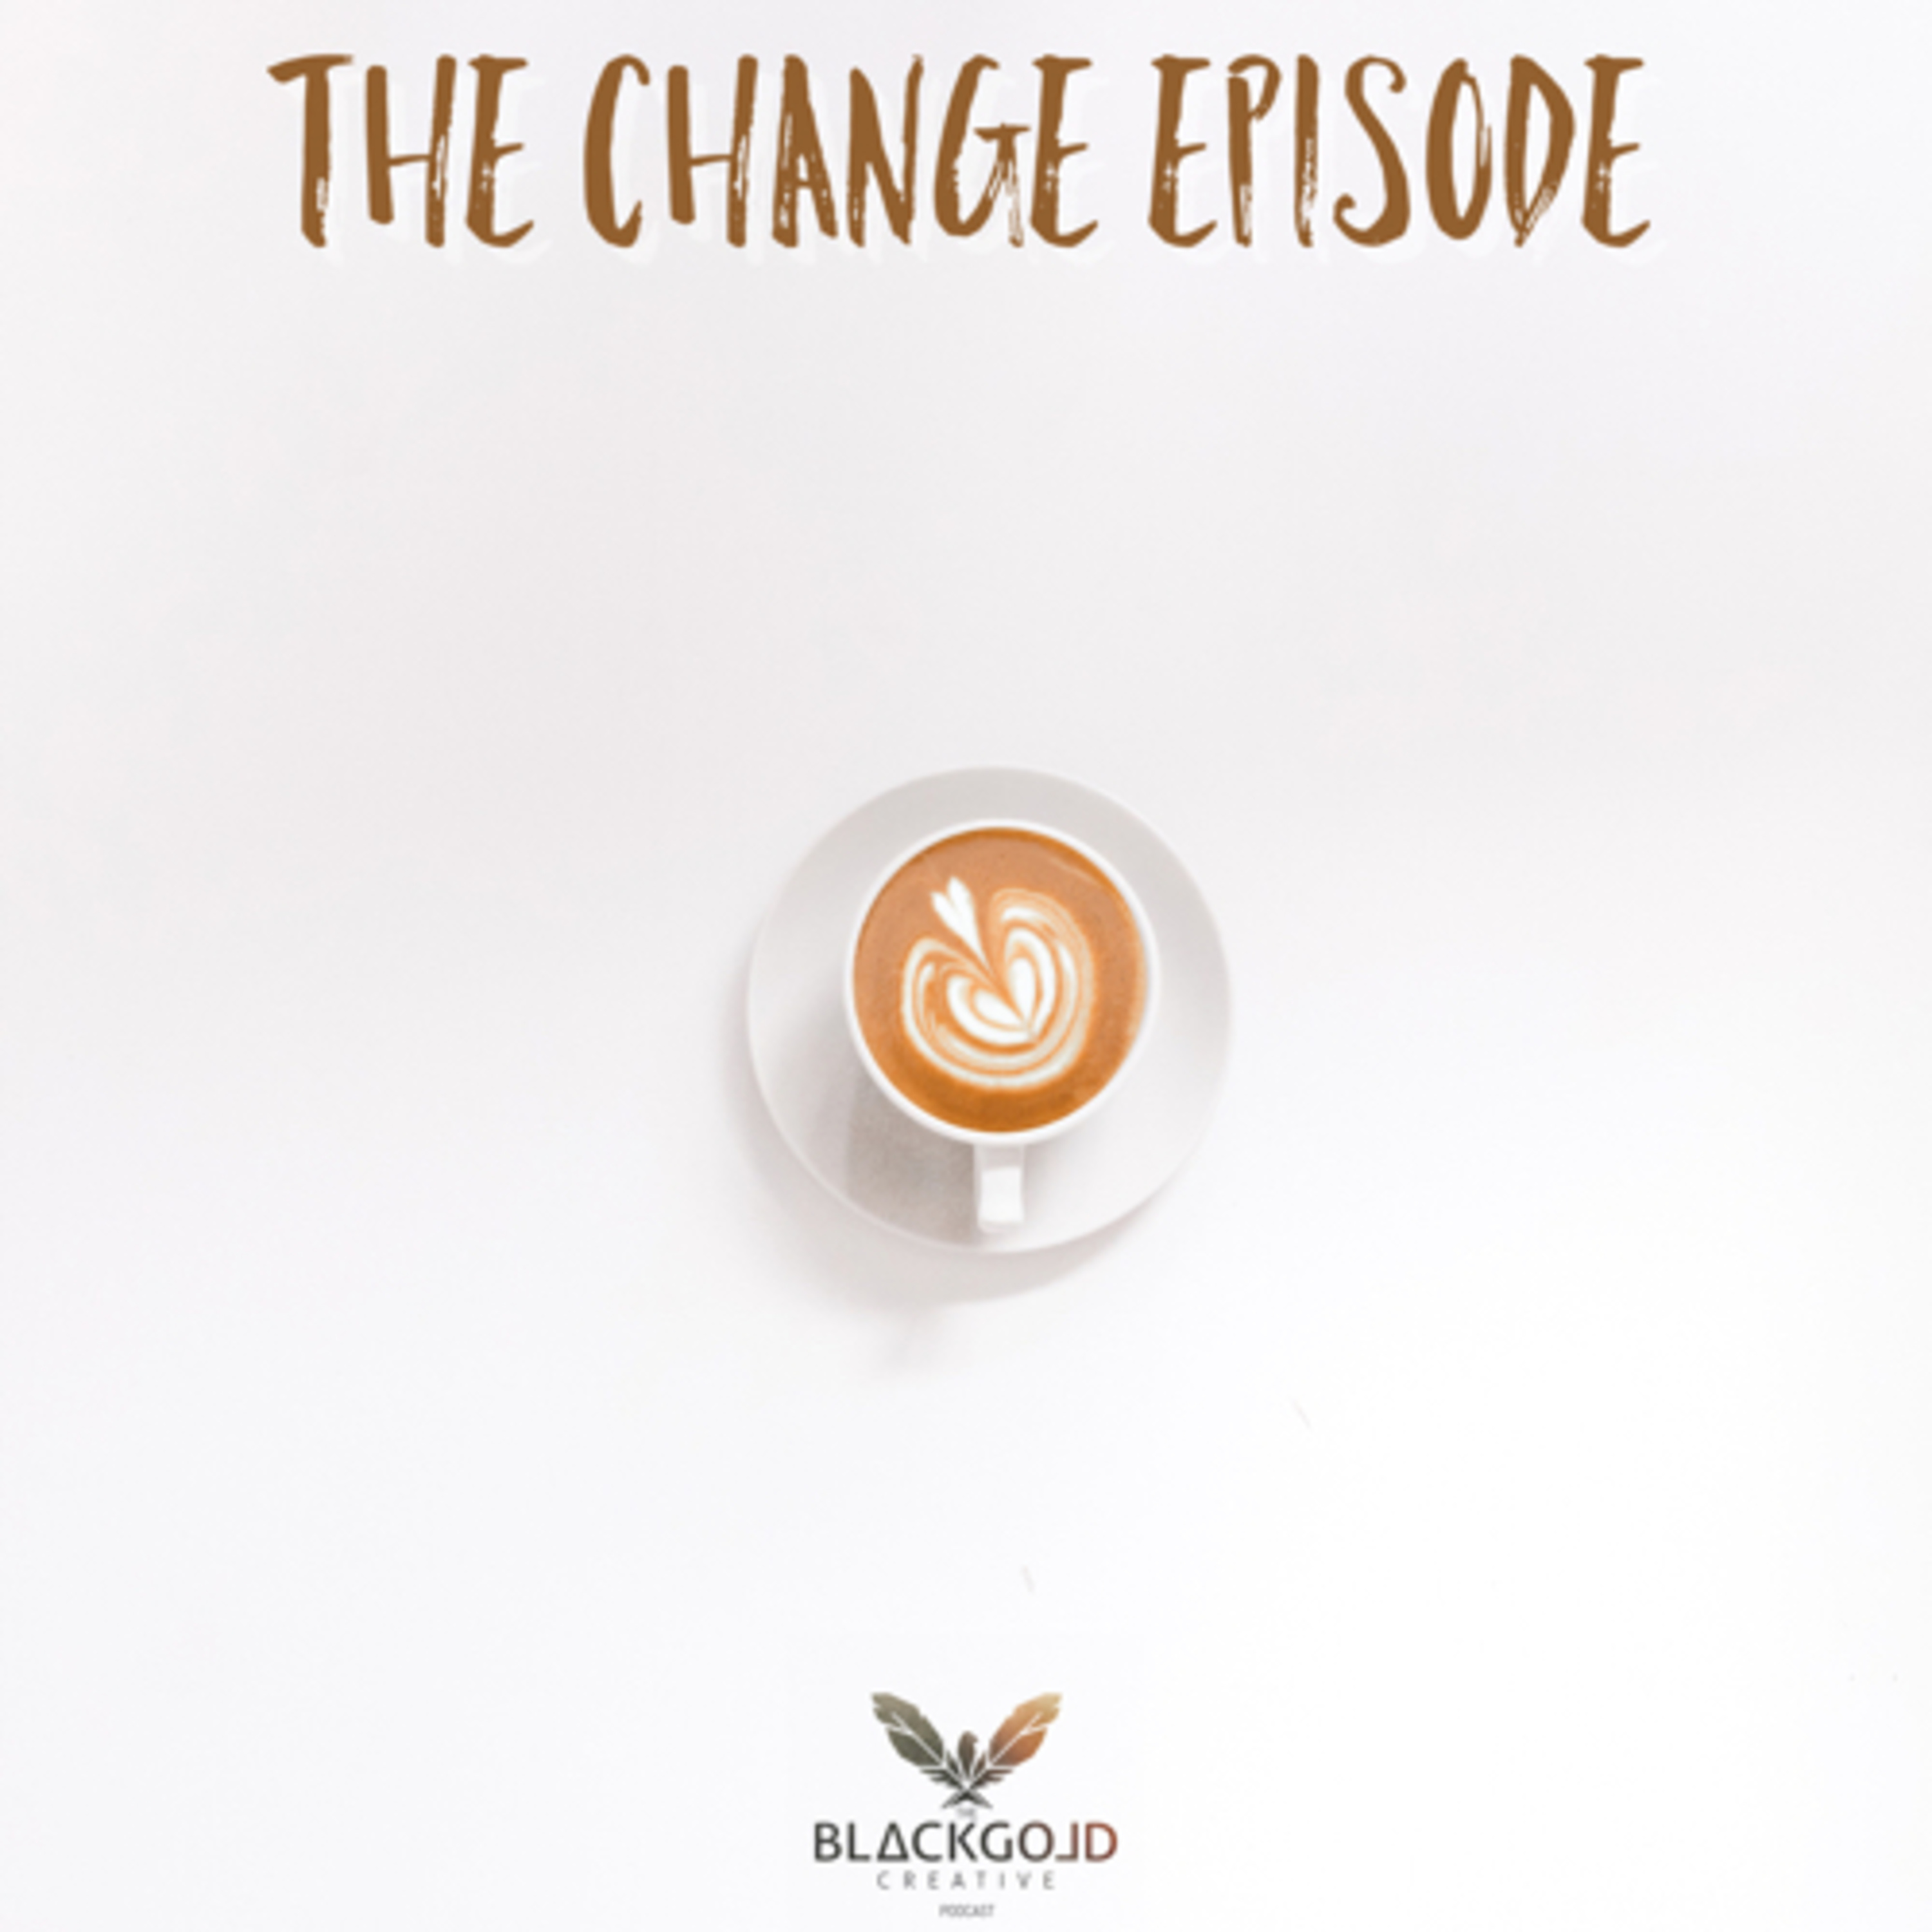 12: The Change Episode